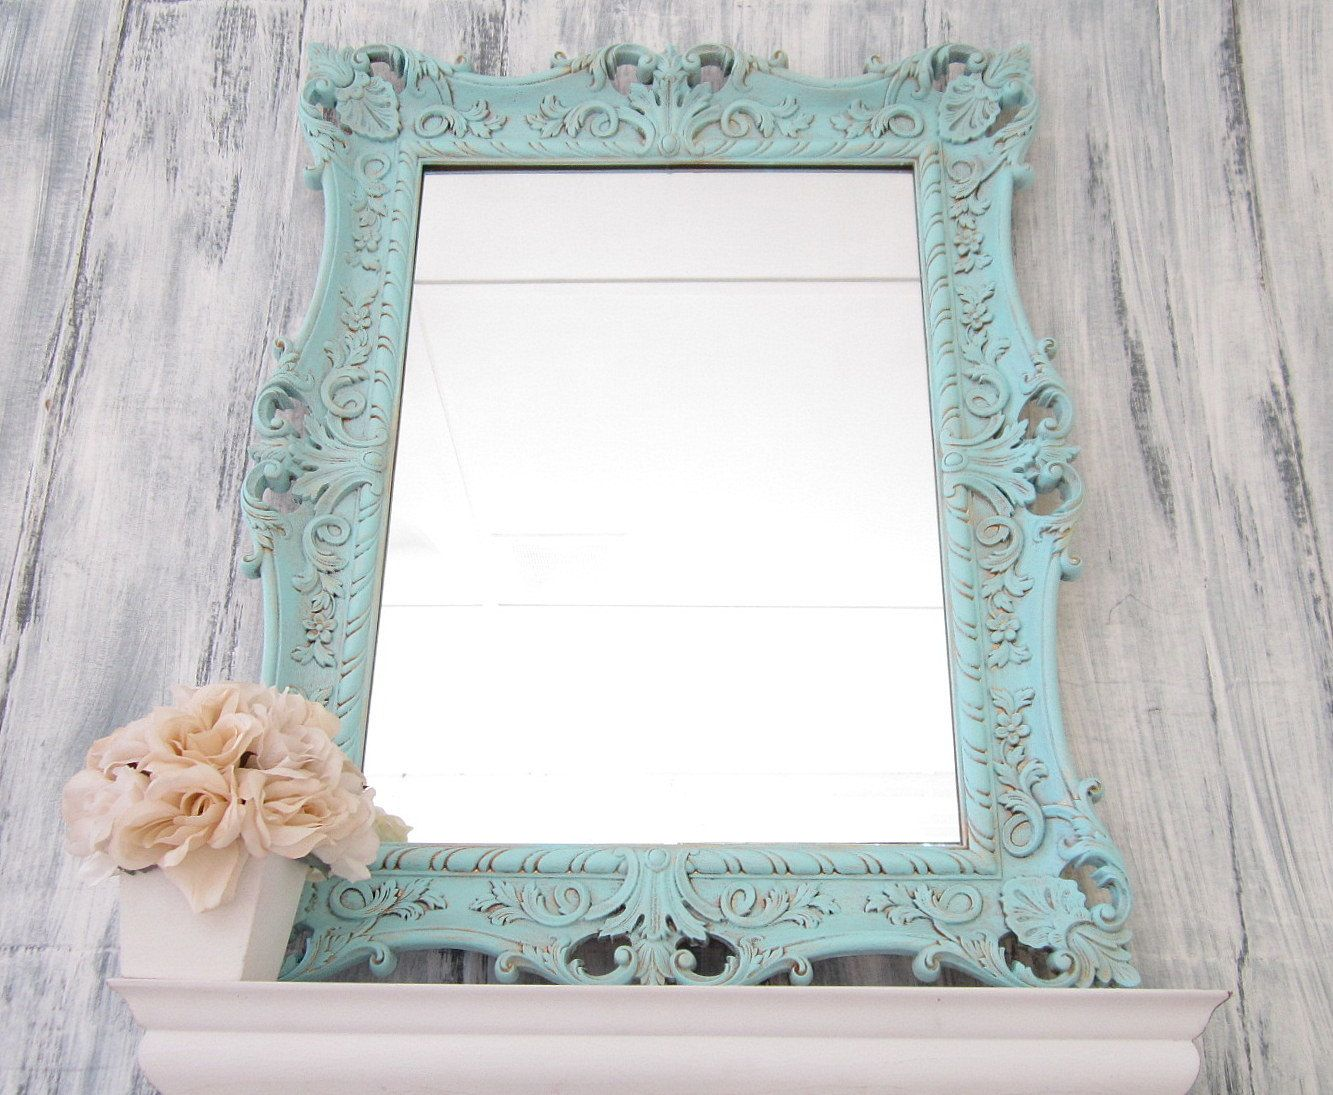 teal blue mirror french country home mirror for sale. Black Bedroom Furniture Sets. Home Design Ideas